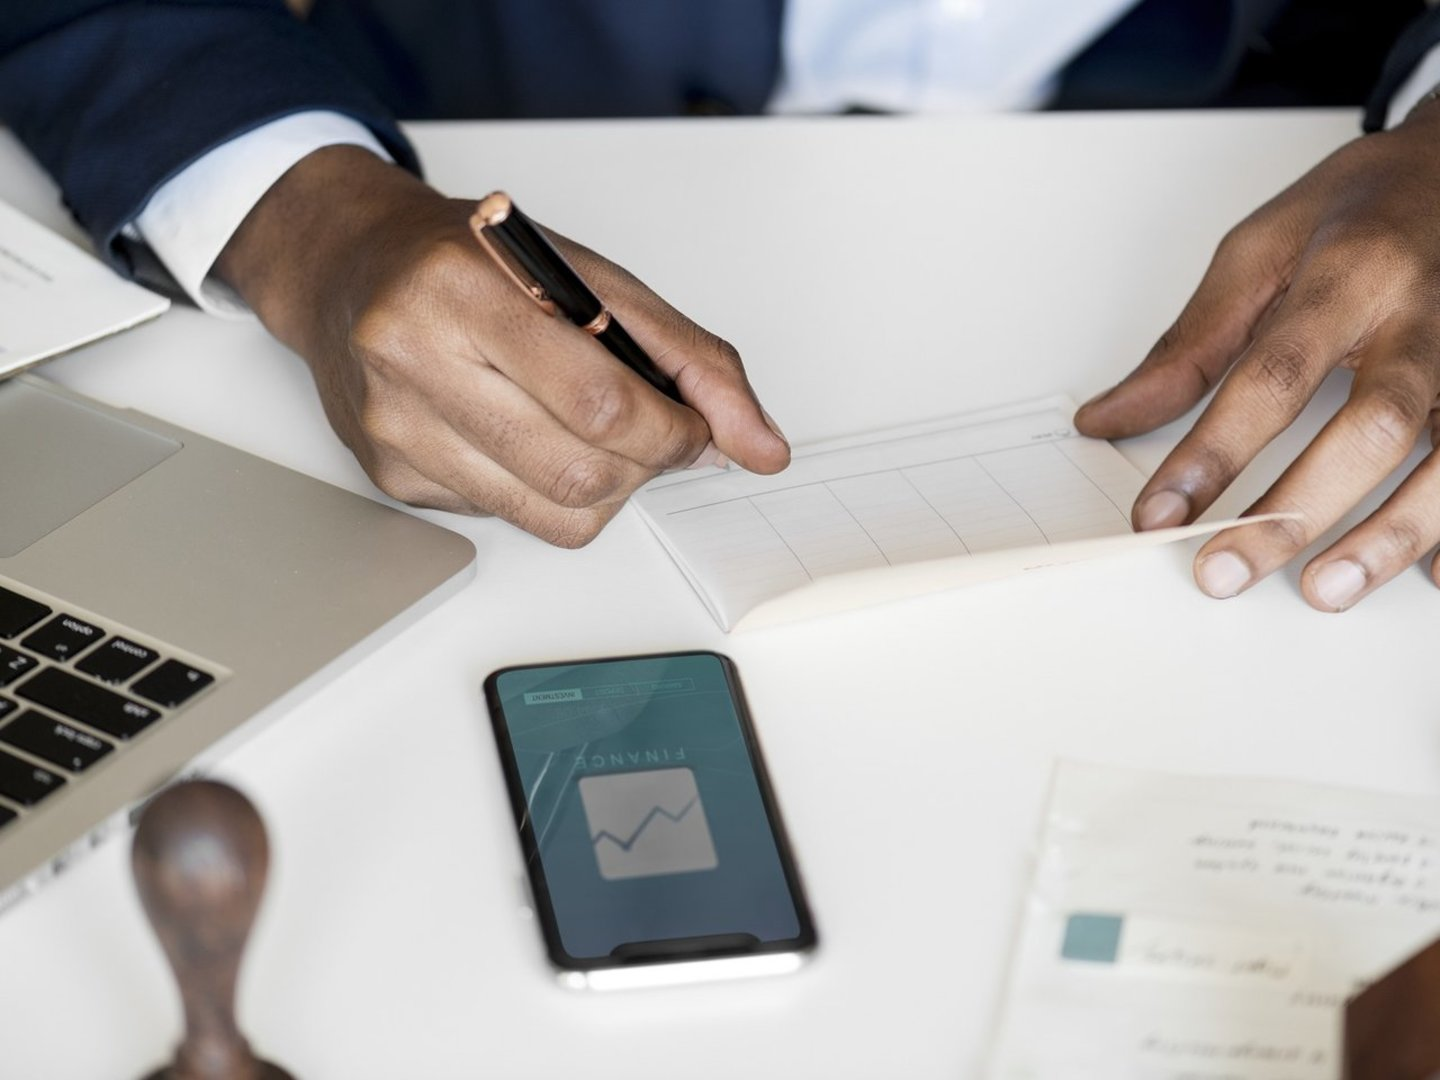 At Peter Vickers Business Group, we produce high quality accounting reports with detailed notes which will help you understand your business performance more accurately, helping with your accounting and business planning.